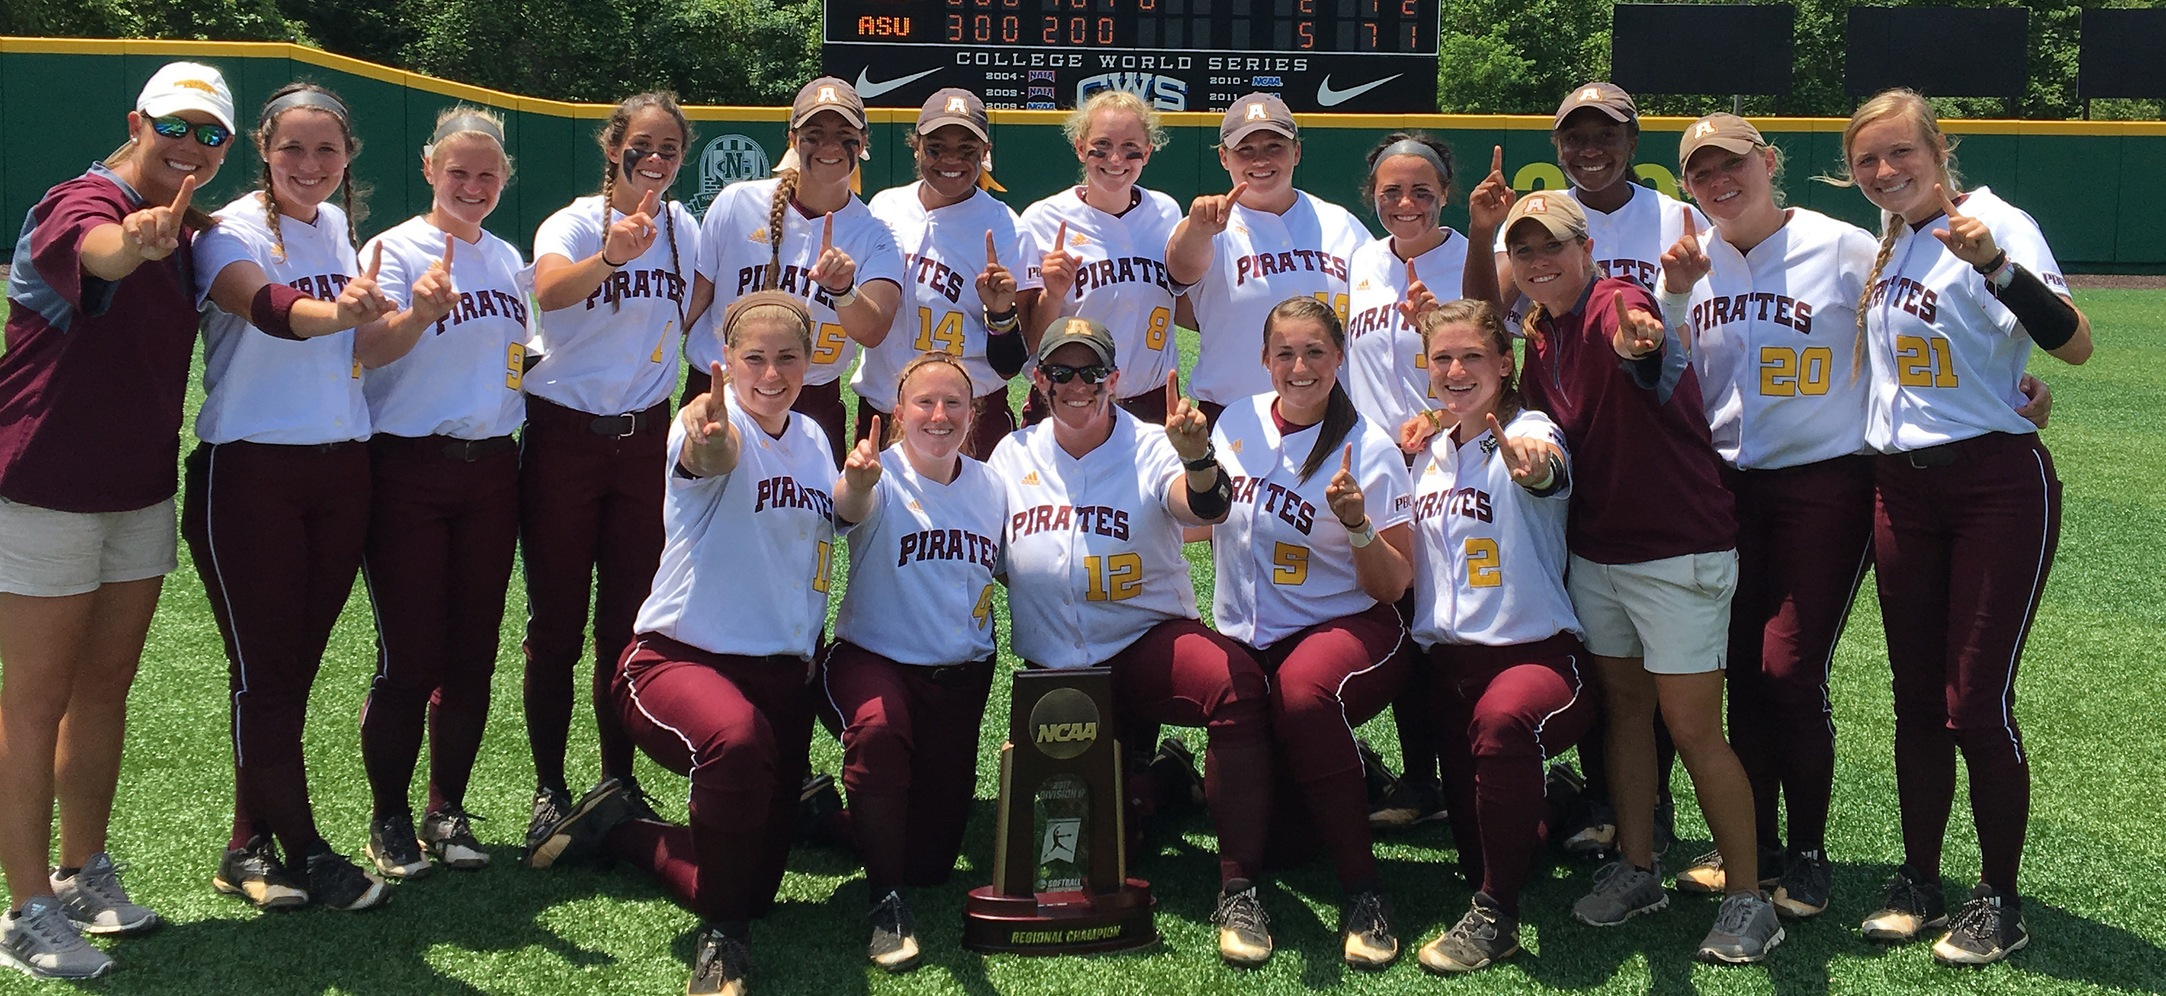 SUPER REGIONAL CHAMPIONS! Softball Headed To Salem With 5-2 Win Over No. 3 North Georgia